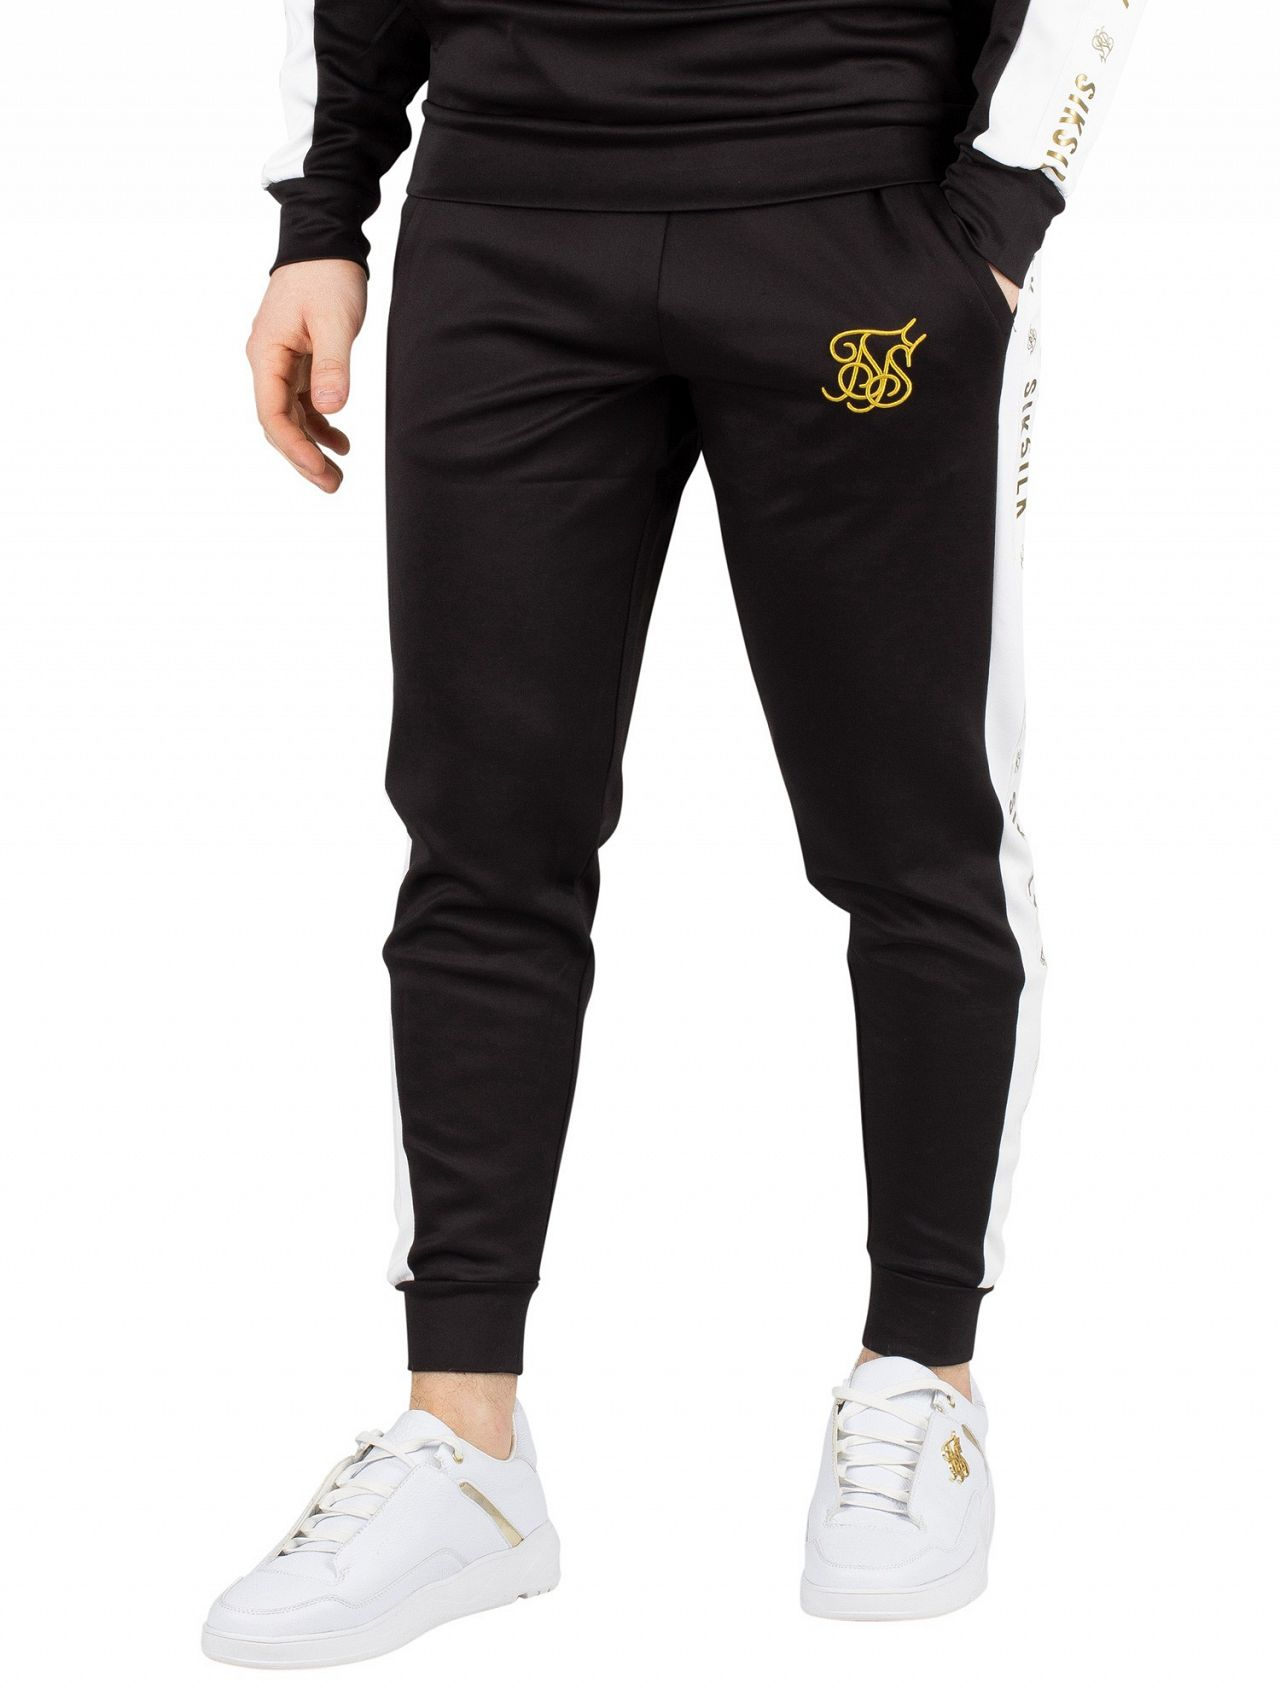 Sik Silk Black White Gold Racer Cuffed Taped Joggers  4d96b765bb7b